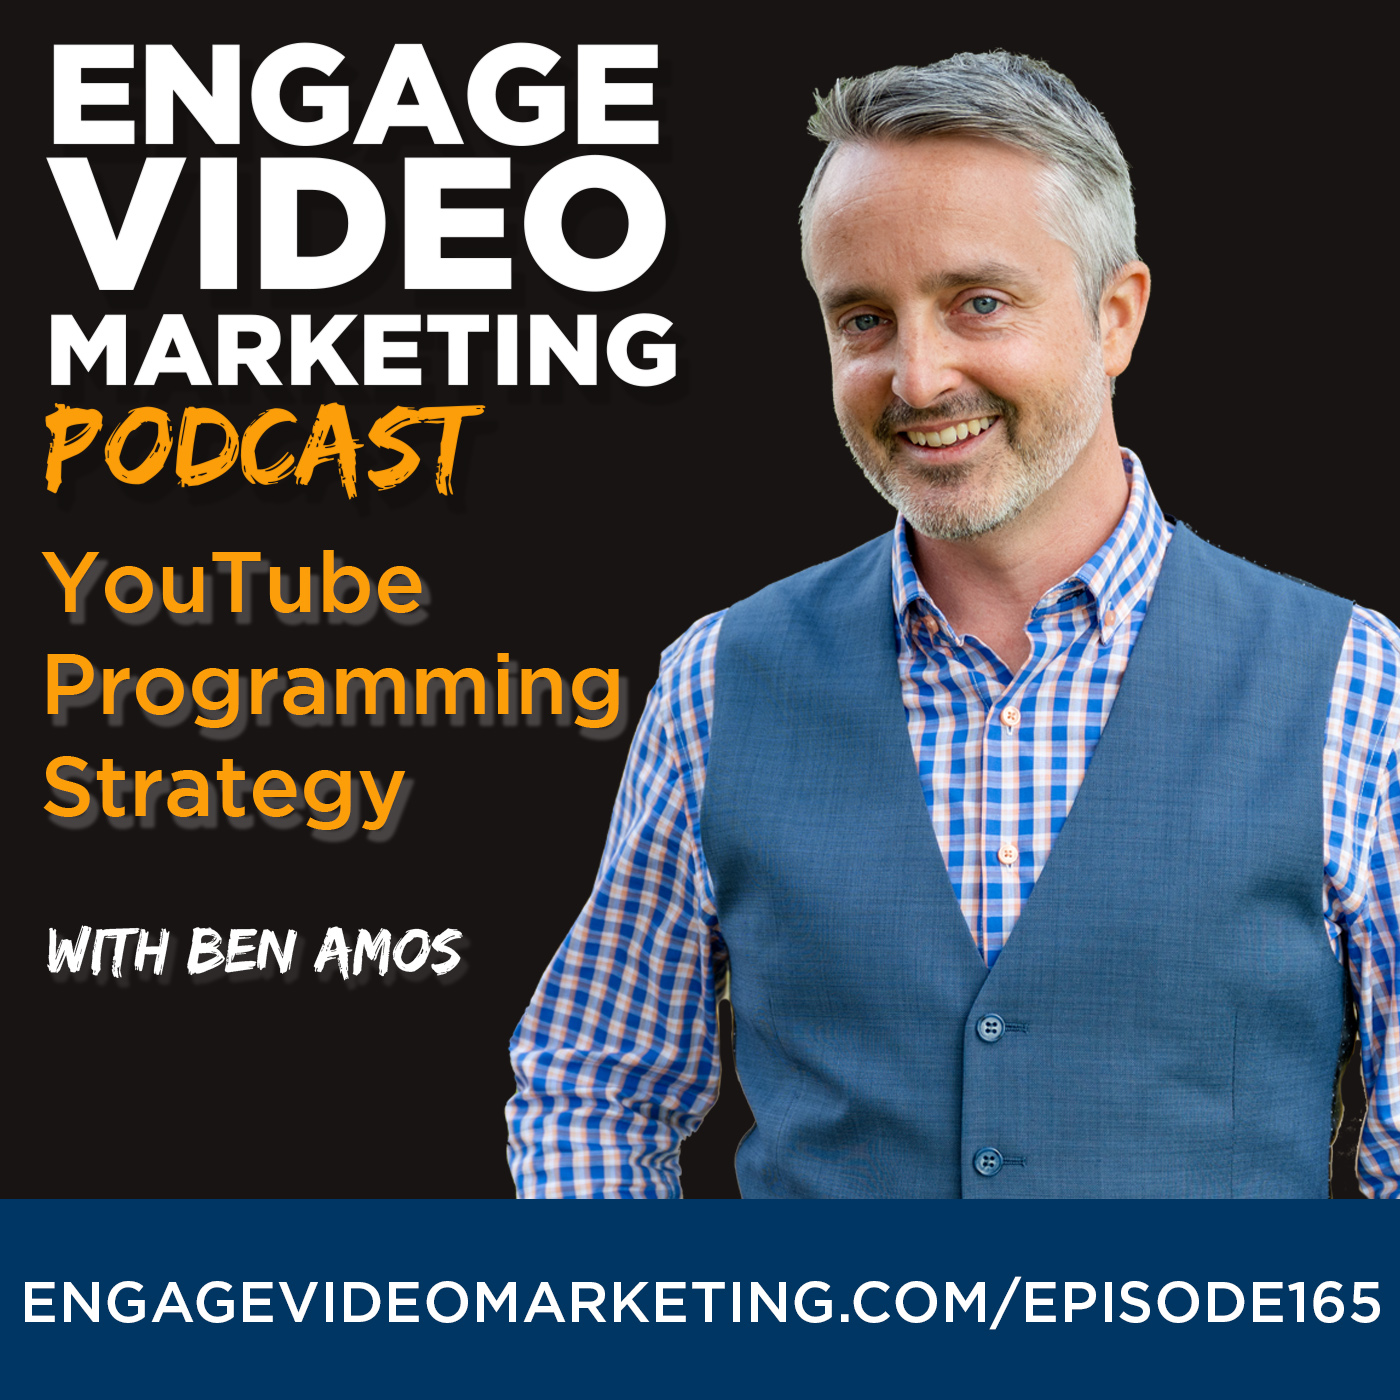 YouTube Programming Strategy with Ben Amos